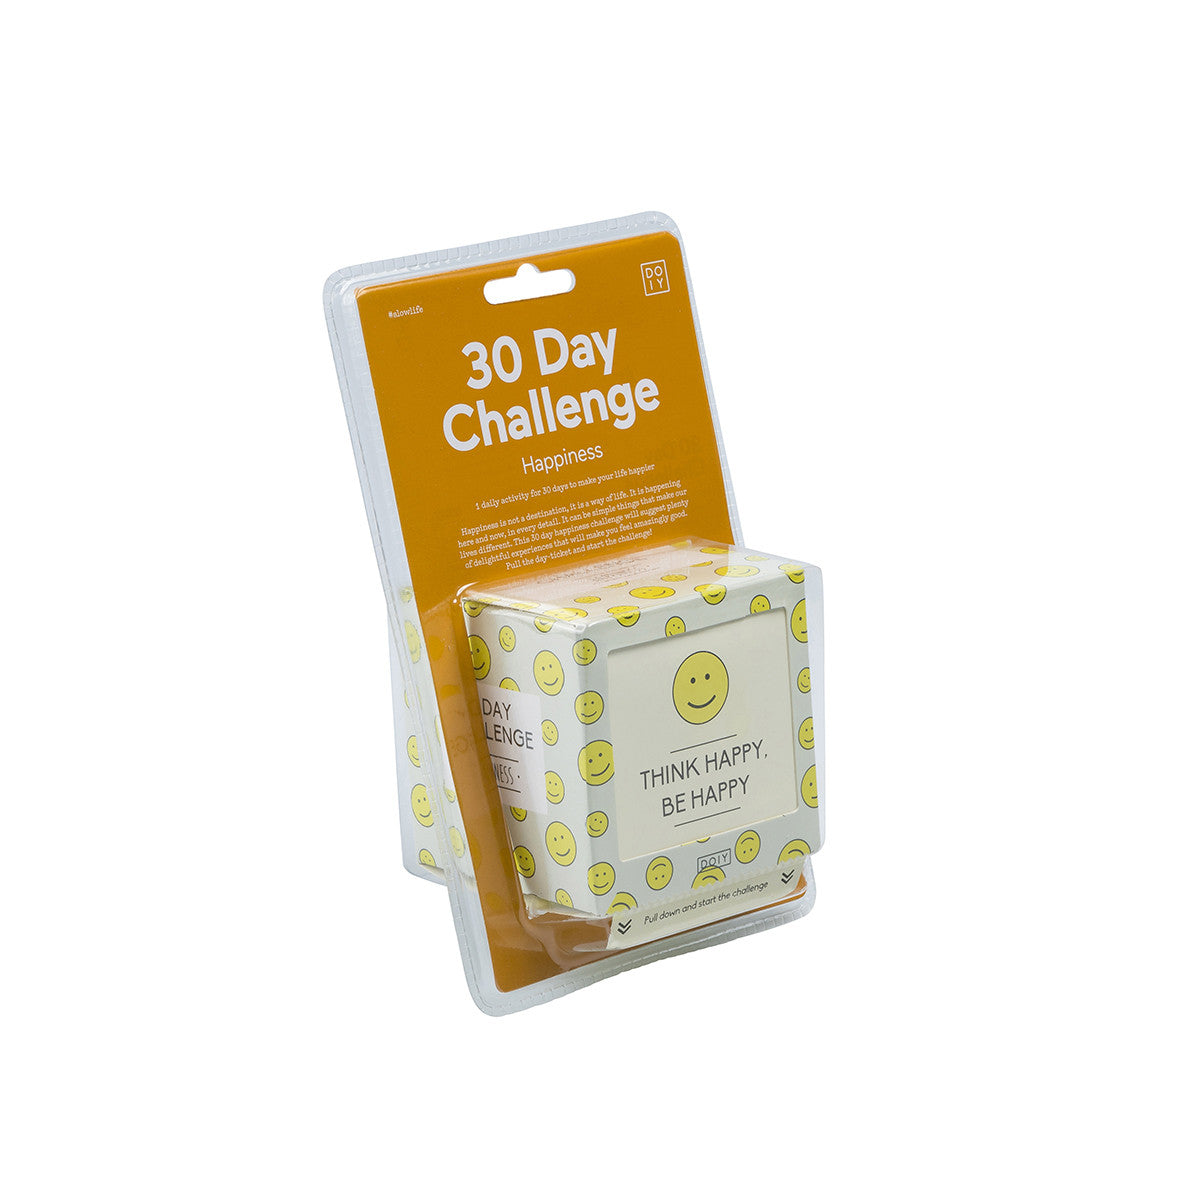 DOIY 30 Day Challenge Activity Box